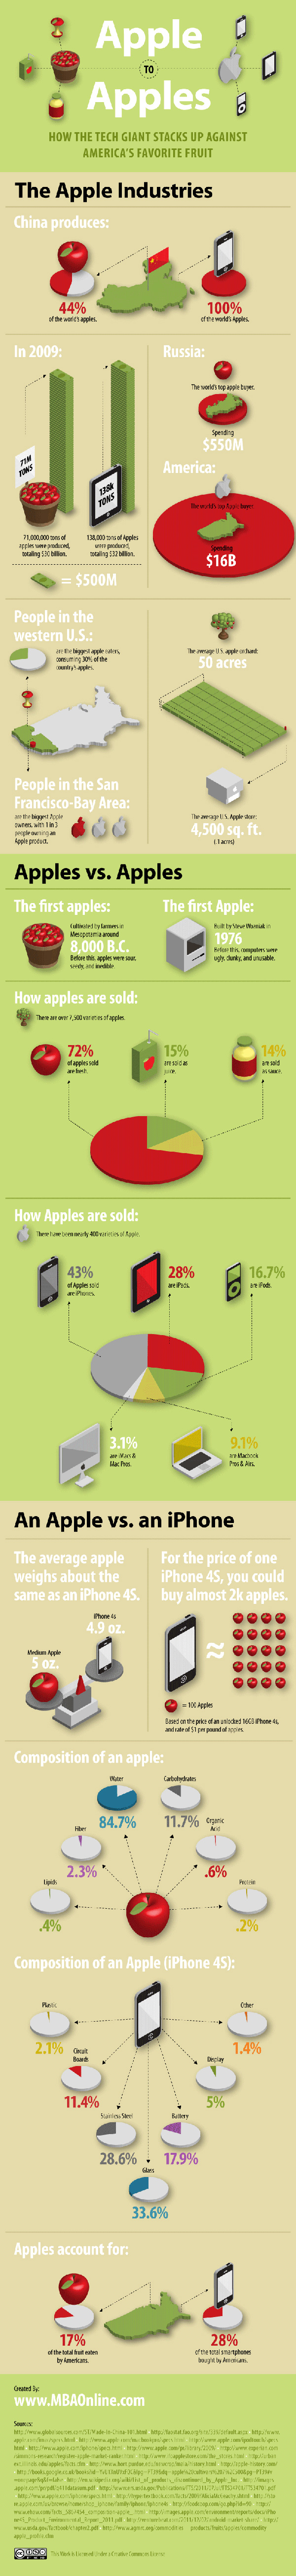 apple-vs-apple-infographic